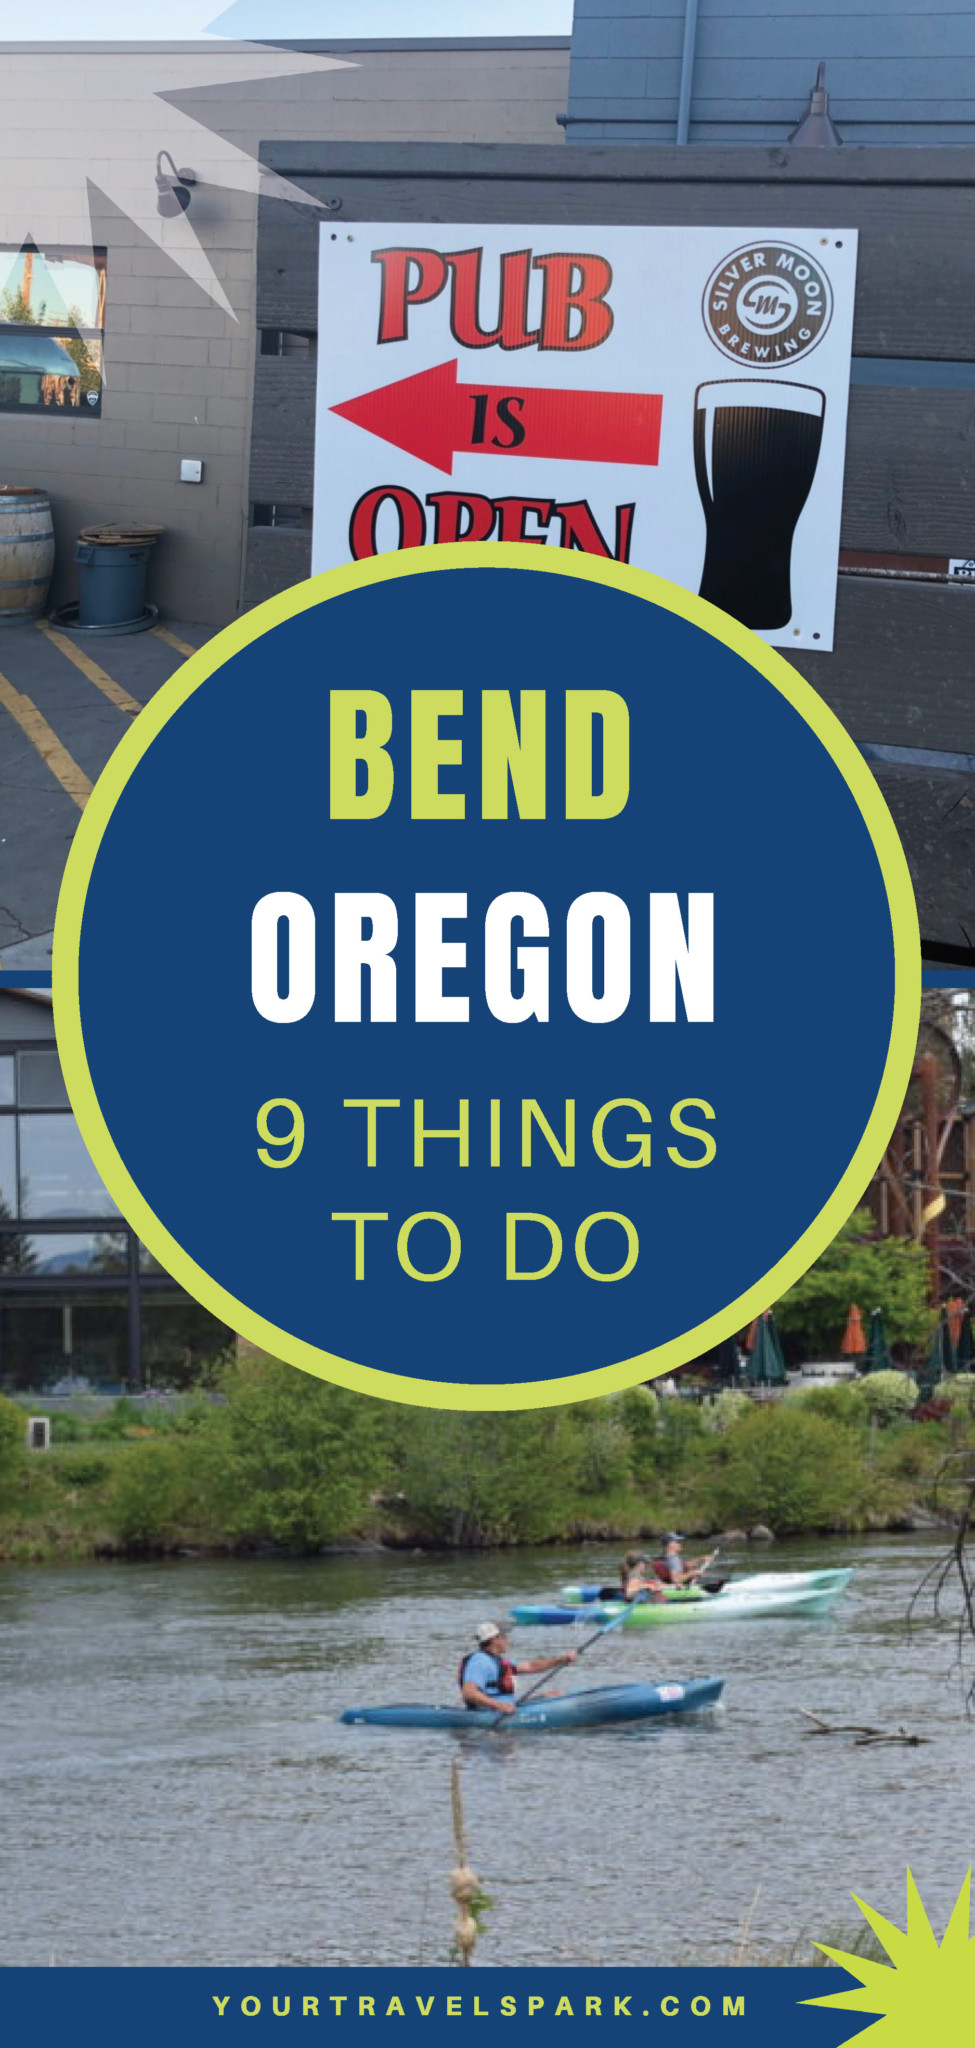 Visiting Bend, Oregon means hiking, camping, skiing, breweries, and more! Here are some things to do, places to stay, and breweries to visit in Bend, Oregon. #bendoregon #bend #oregon #centraloregon #thingstodo #breweries #hiking #camping #skiing #mountbachelor #mtbachelor #southsister #threesisters #trails #outdoors #10barrel #deschutesbrewery #deschutes